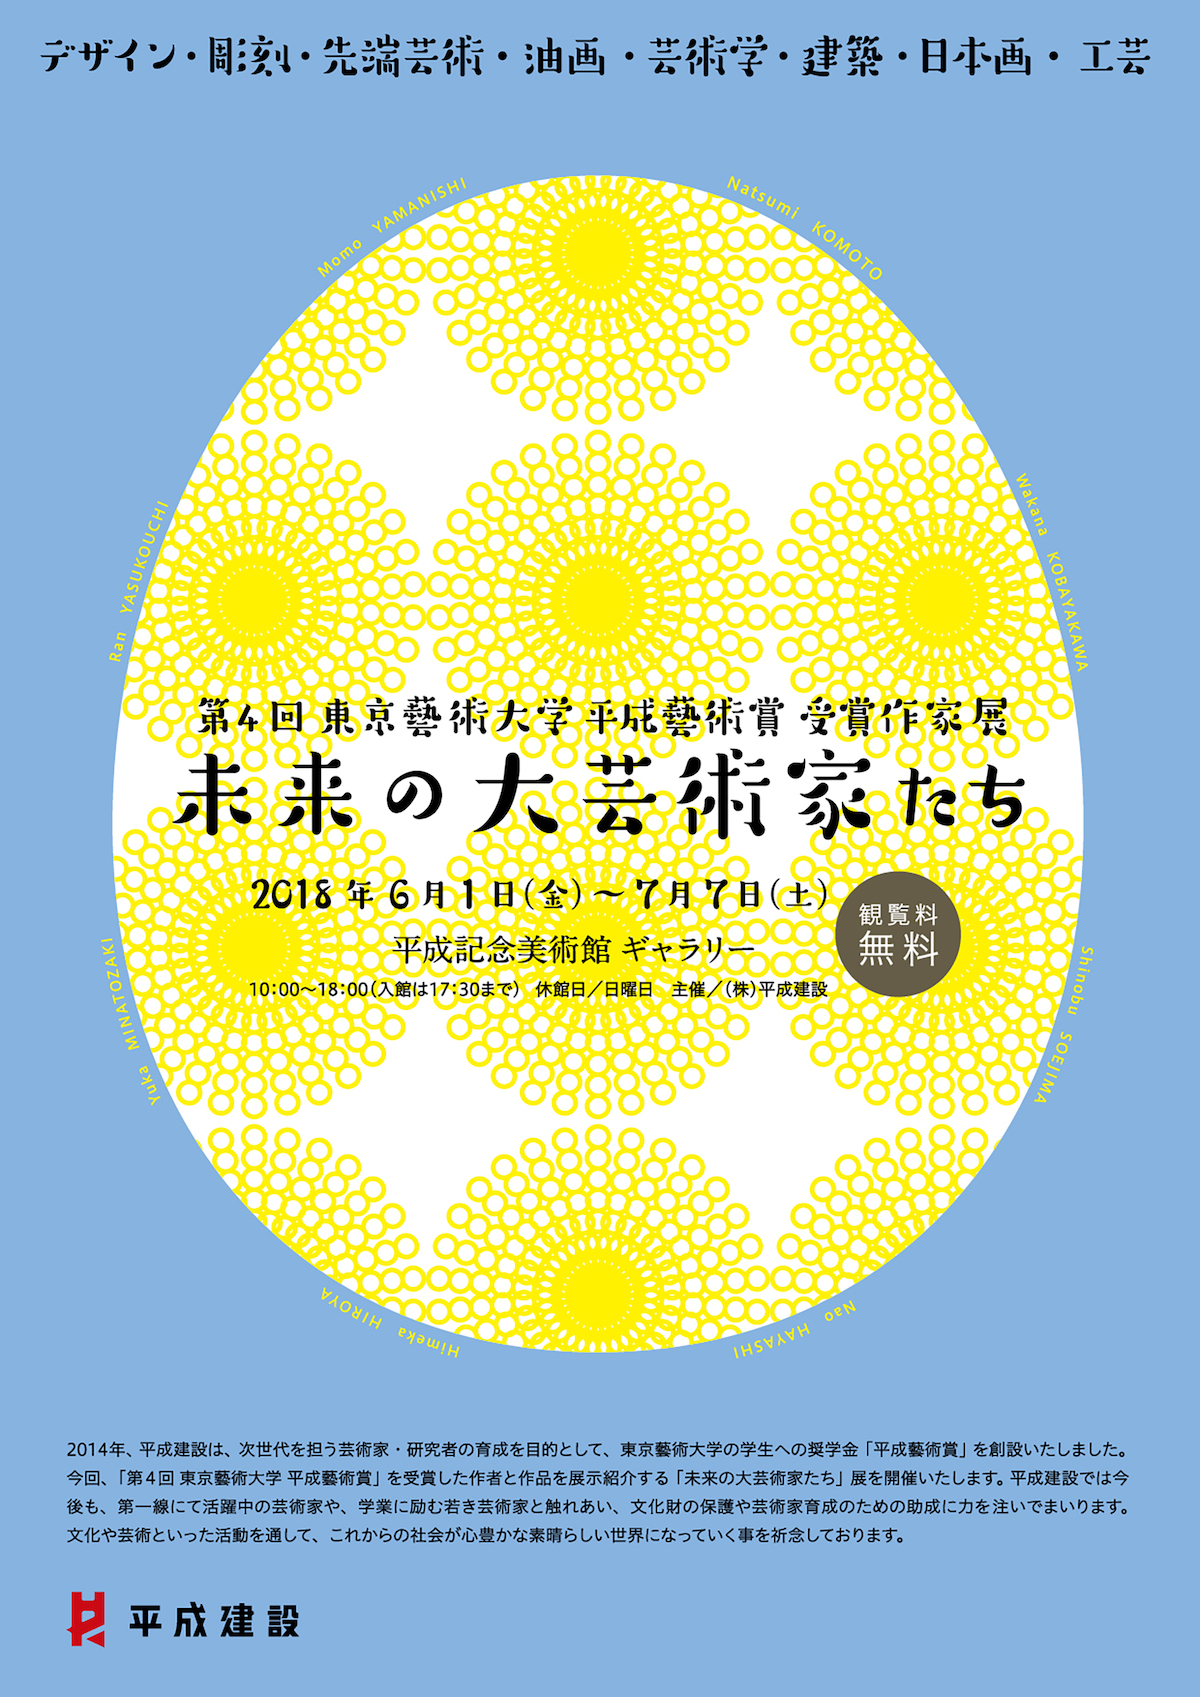 The 4th Tokyo University Heisei Geijutsu Award Exhibition